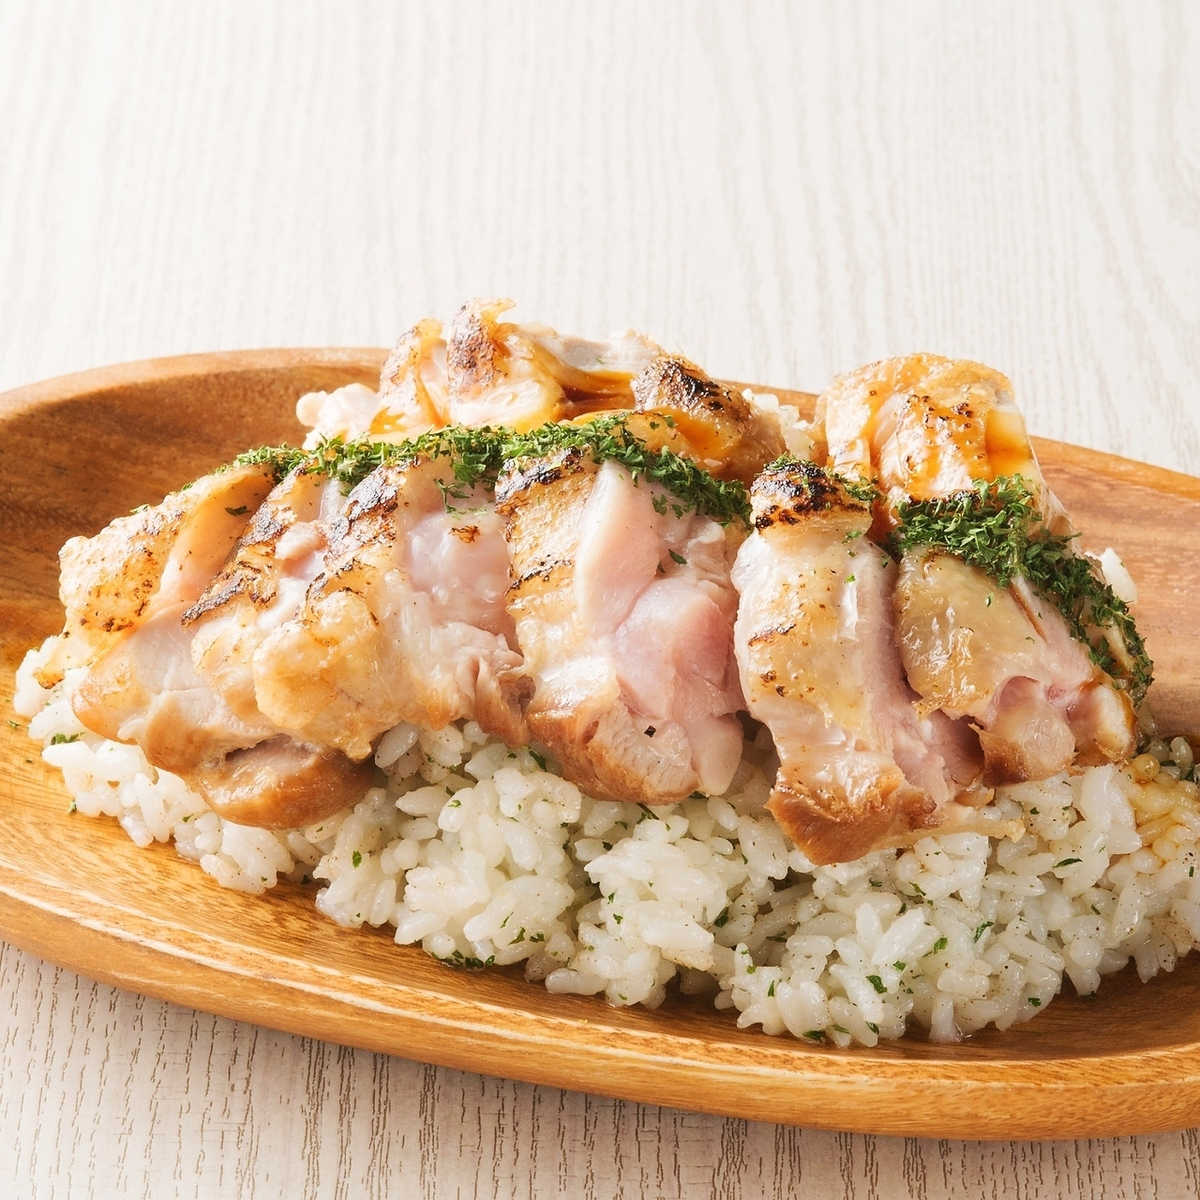 Nagoya Cochin's grilled chicken rice